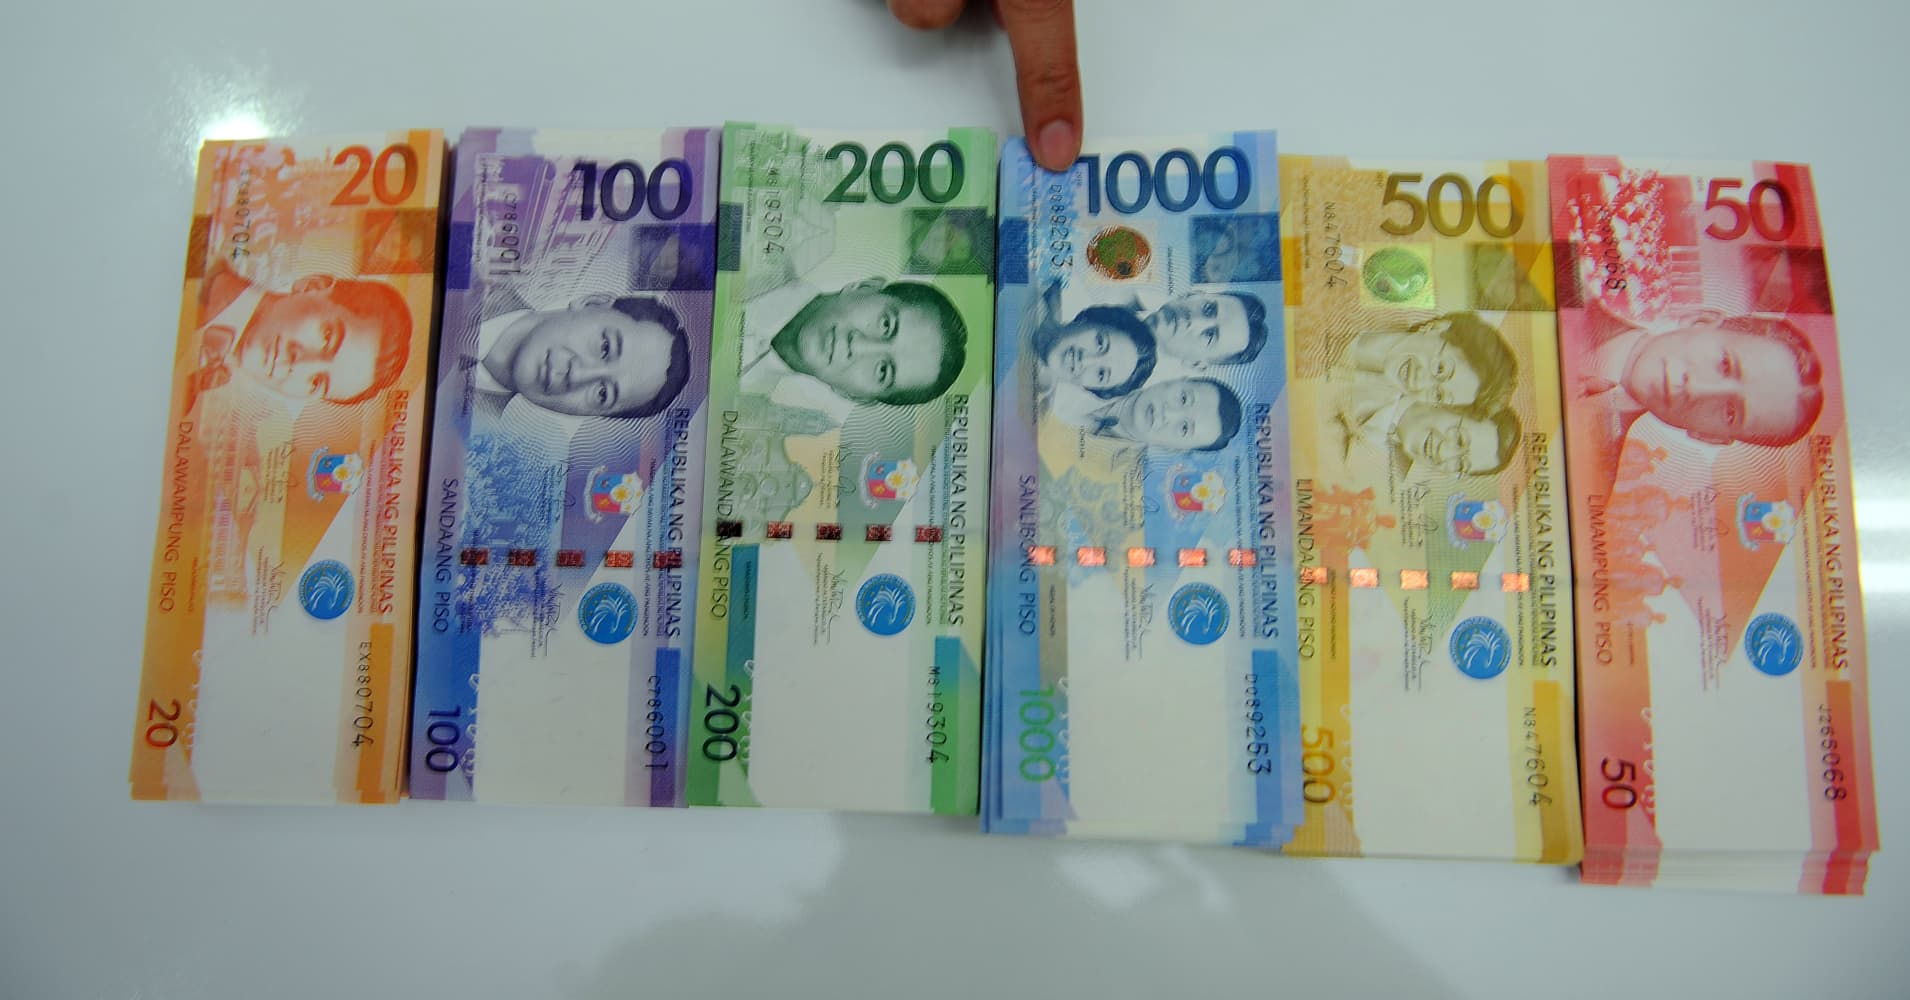 Philippines accidentally leaves former president's face off a batch of currency